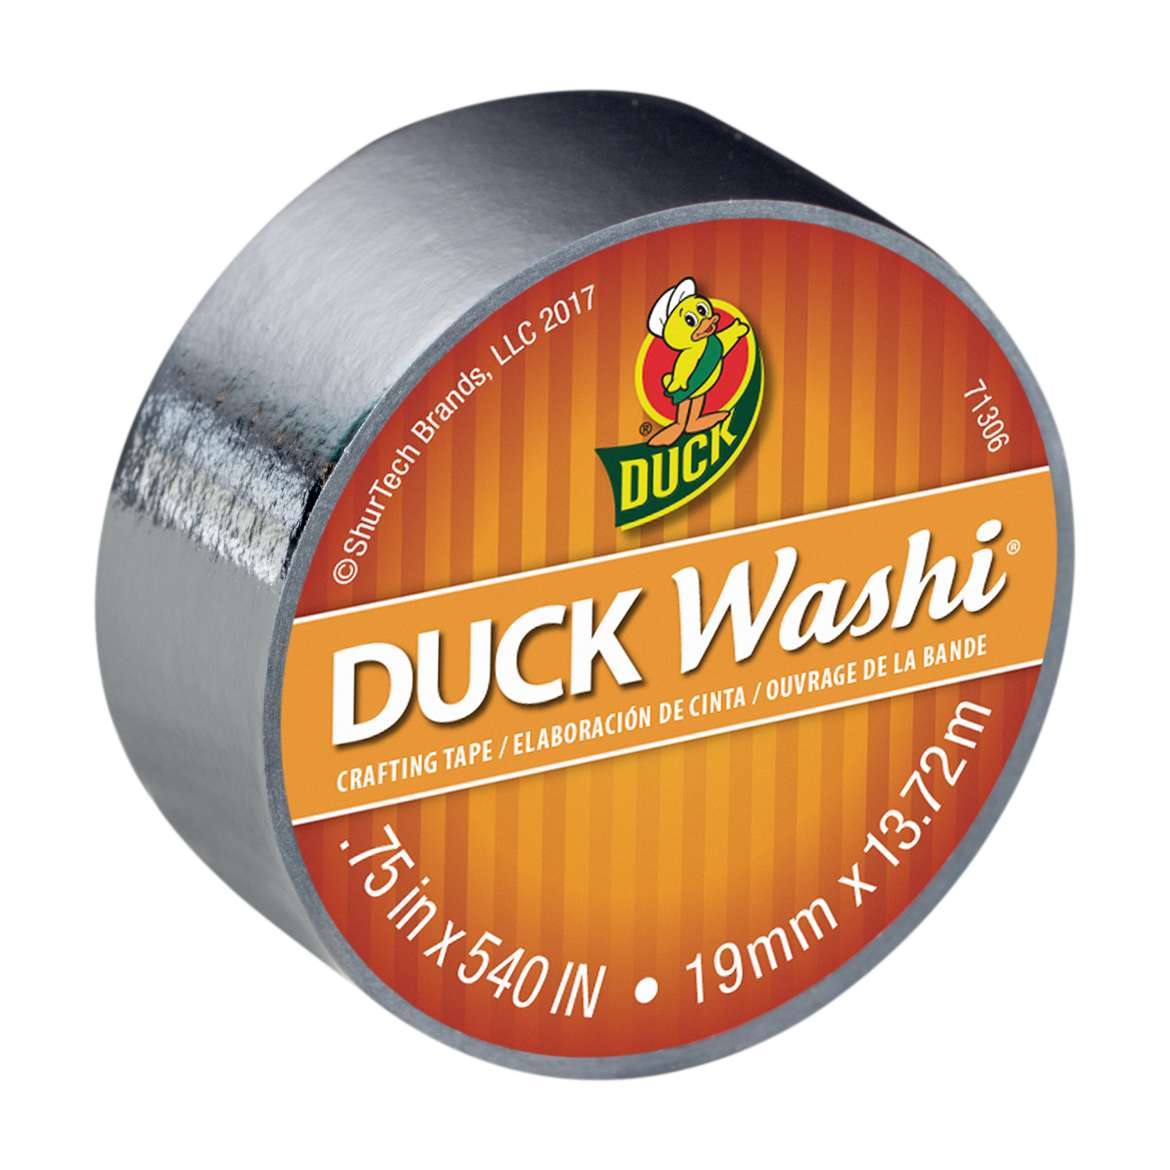 Duck Washi® Crafting Tape - Metallic Silver, 0.75 in. x 15 yds. Image